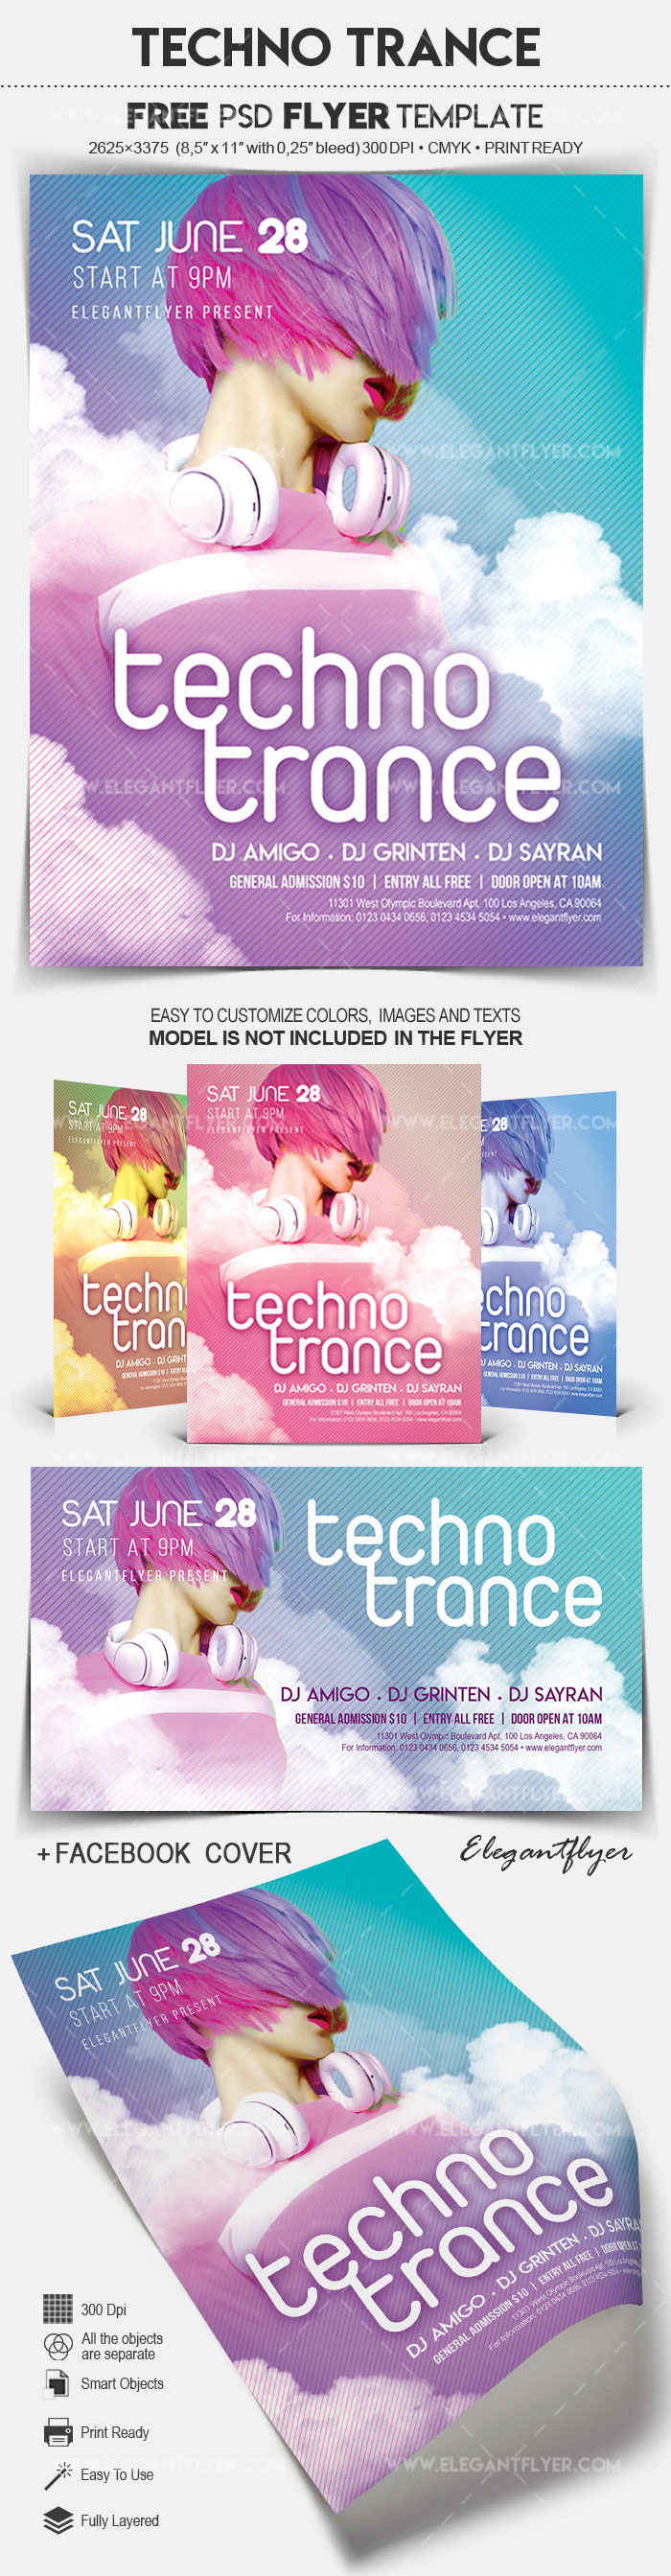 Techno Trance – Free Flyer PSD Template